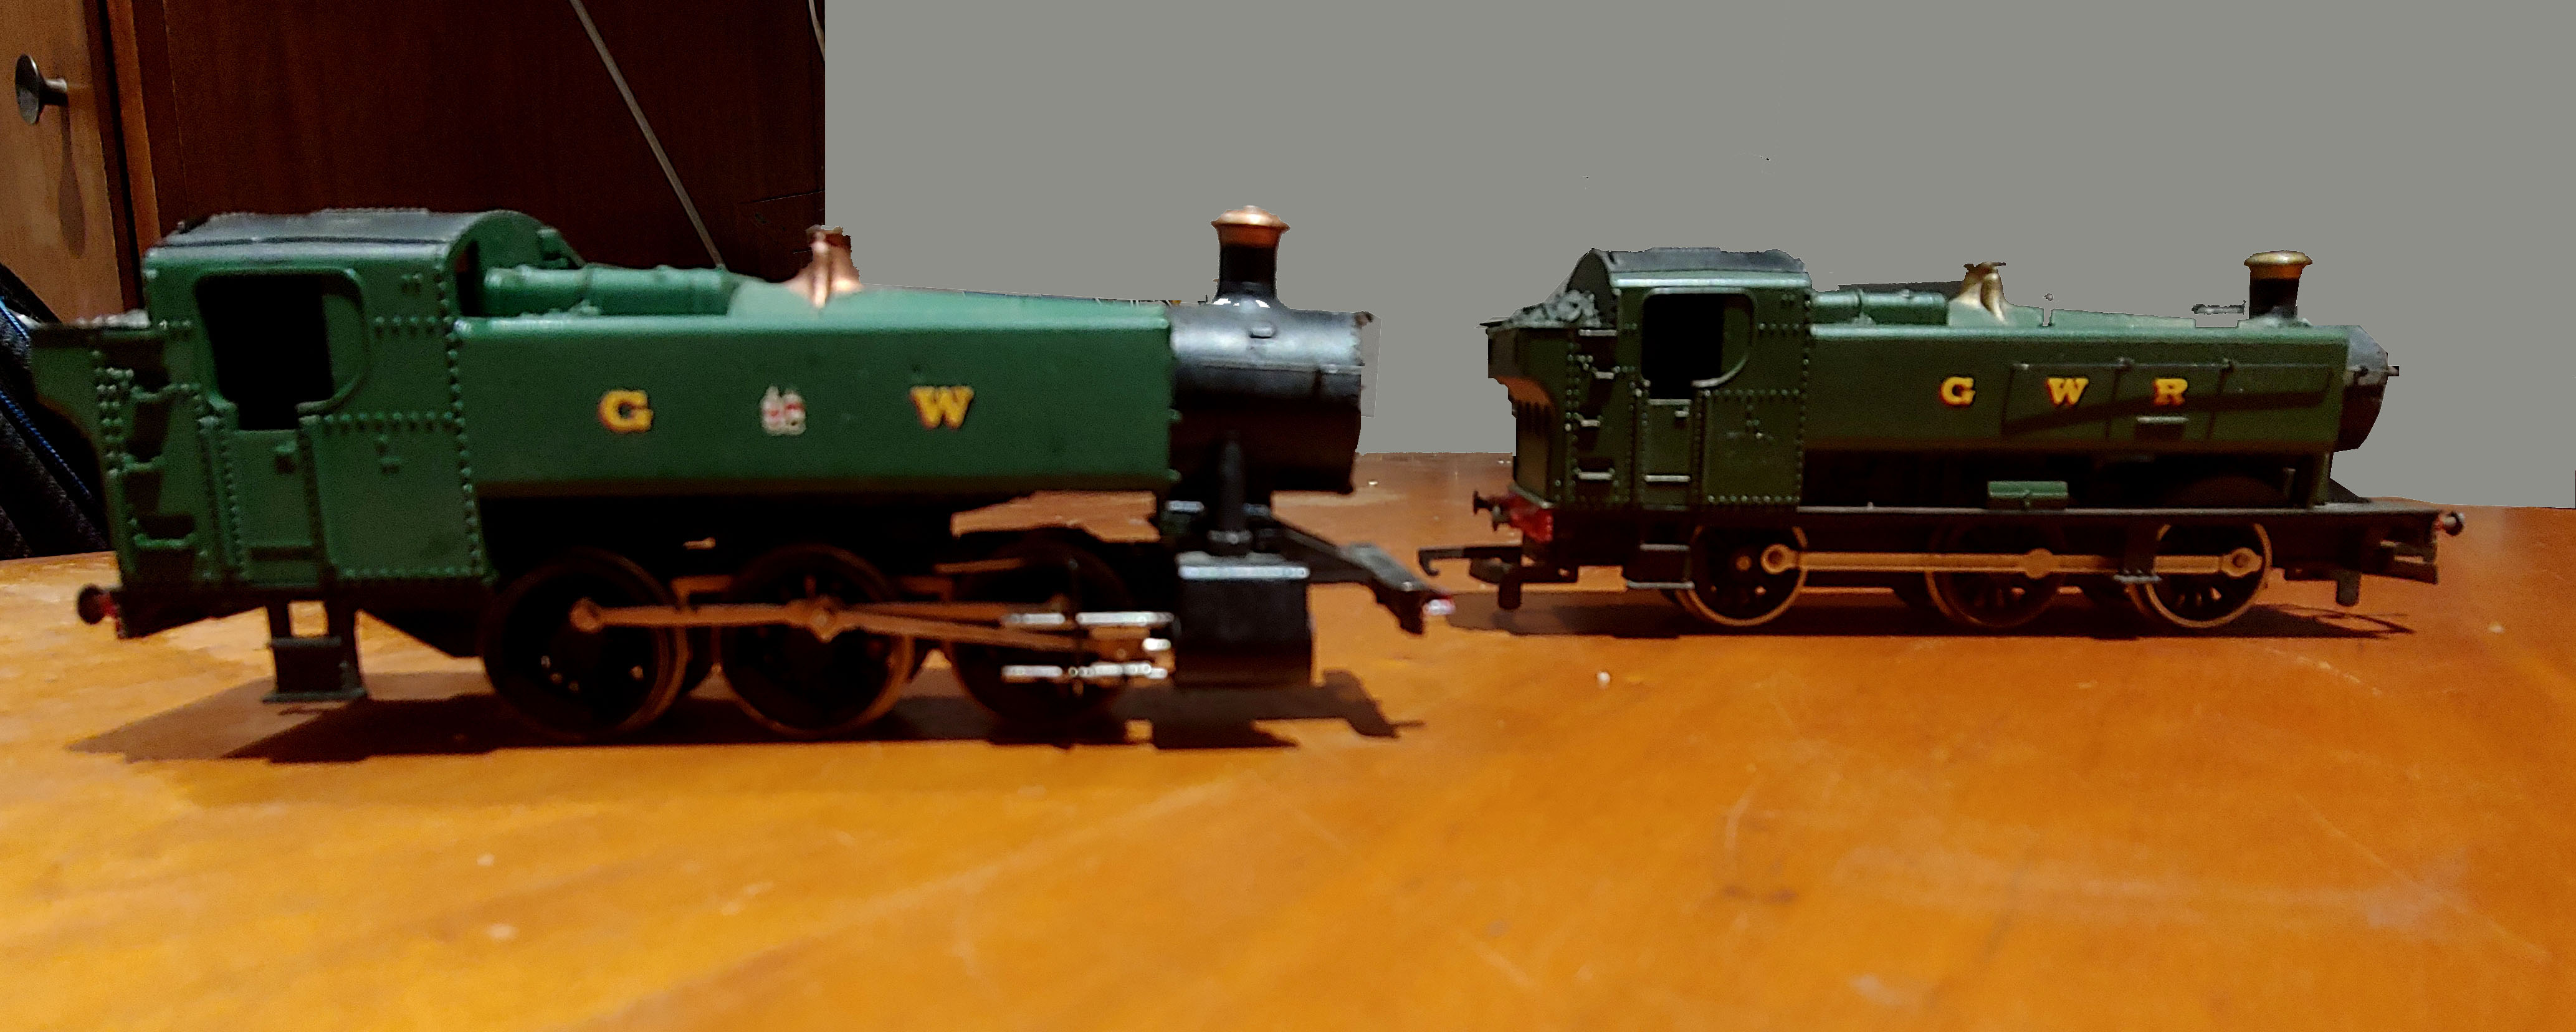 GWR loco modification